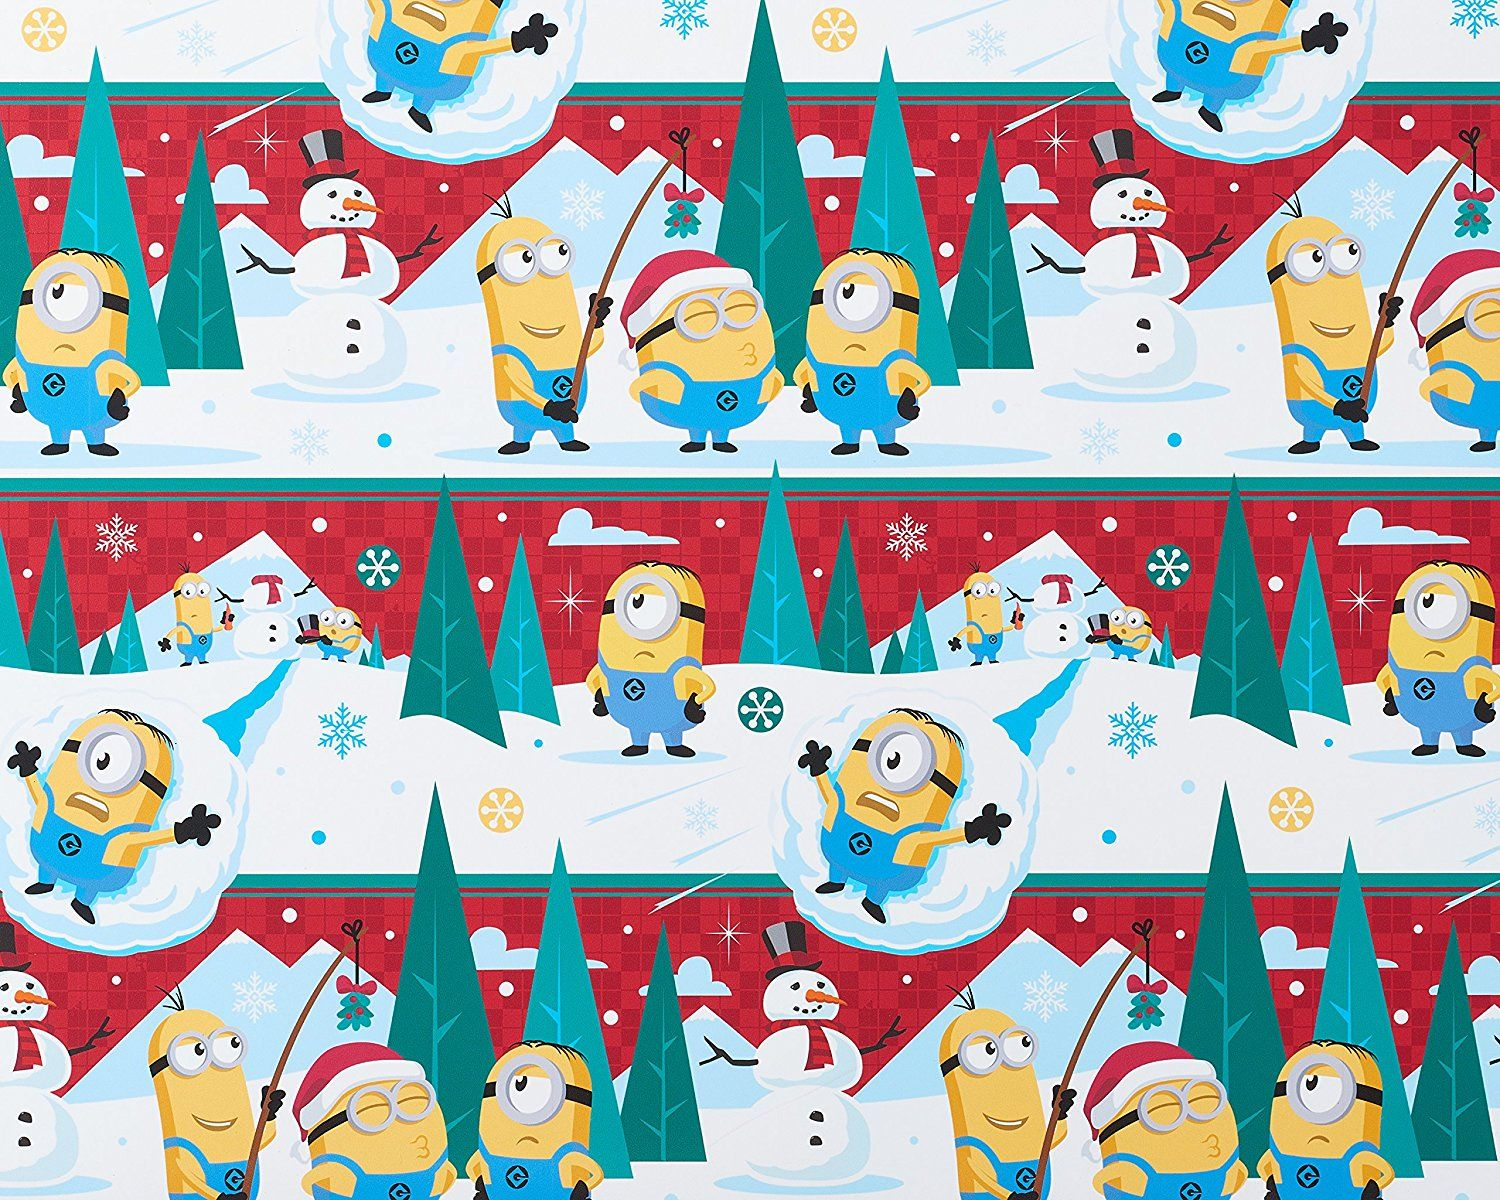 Amazon.com: American Greetings Minions Christmas Wrapping Paper, 2 ...